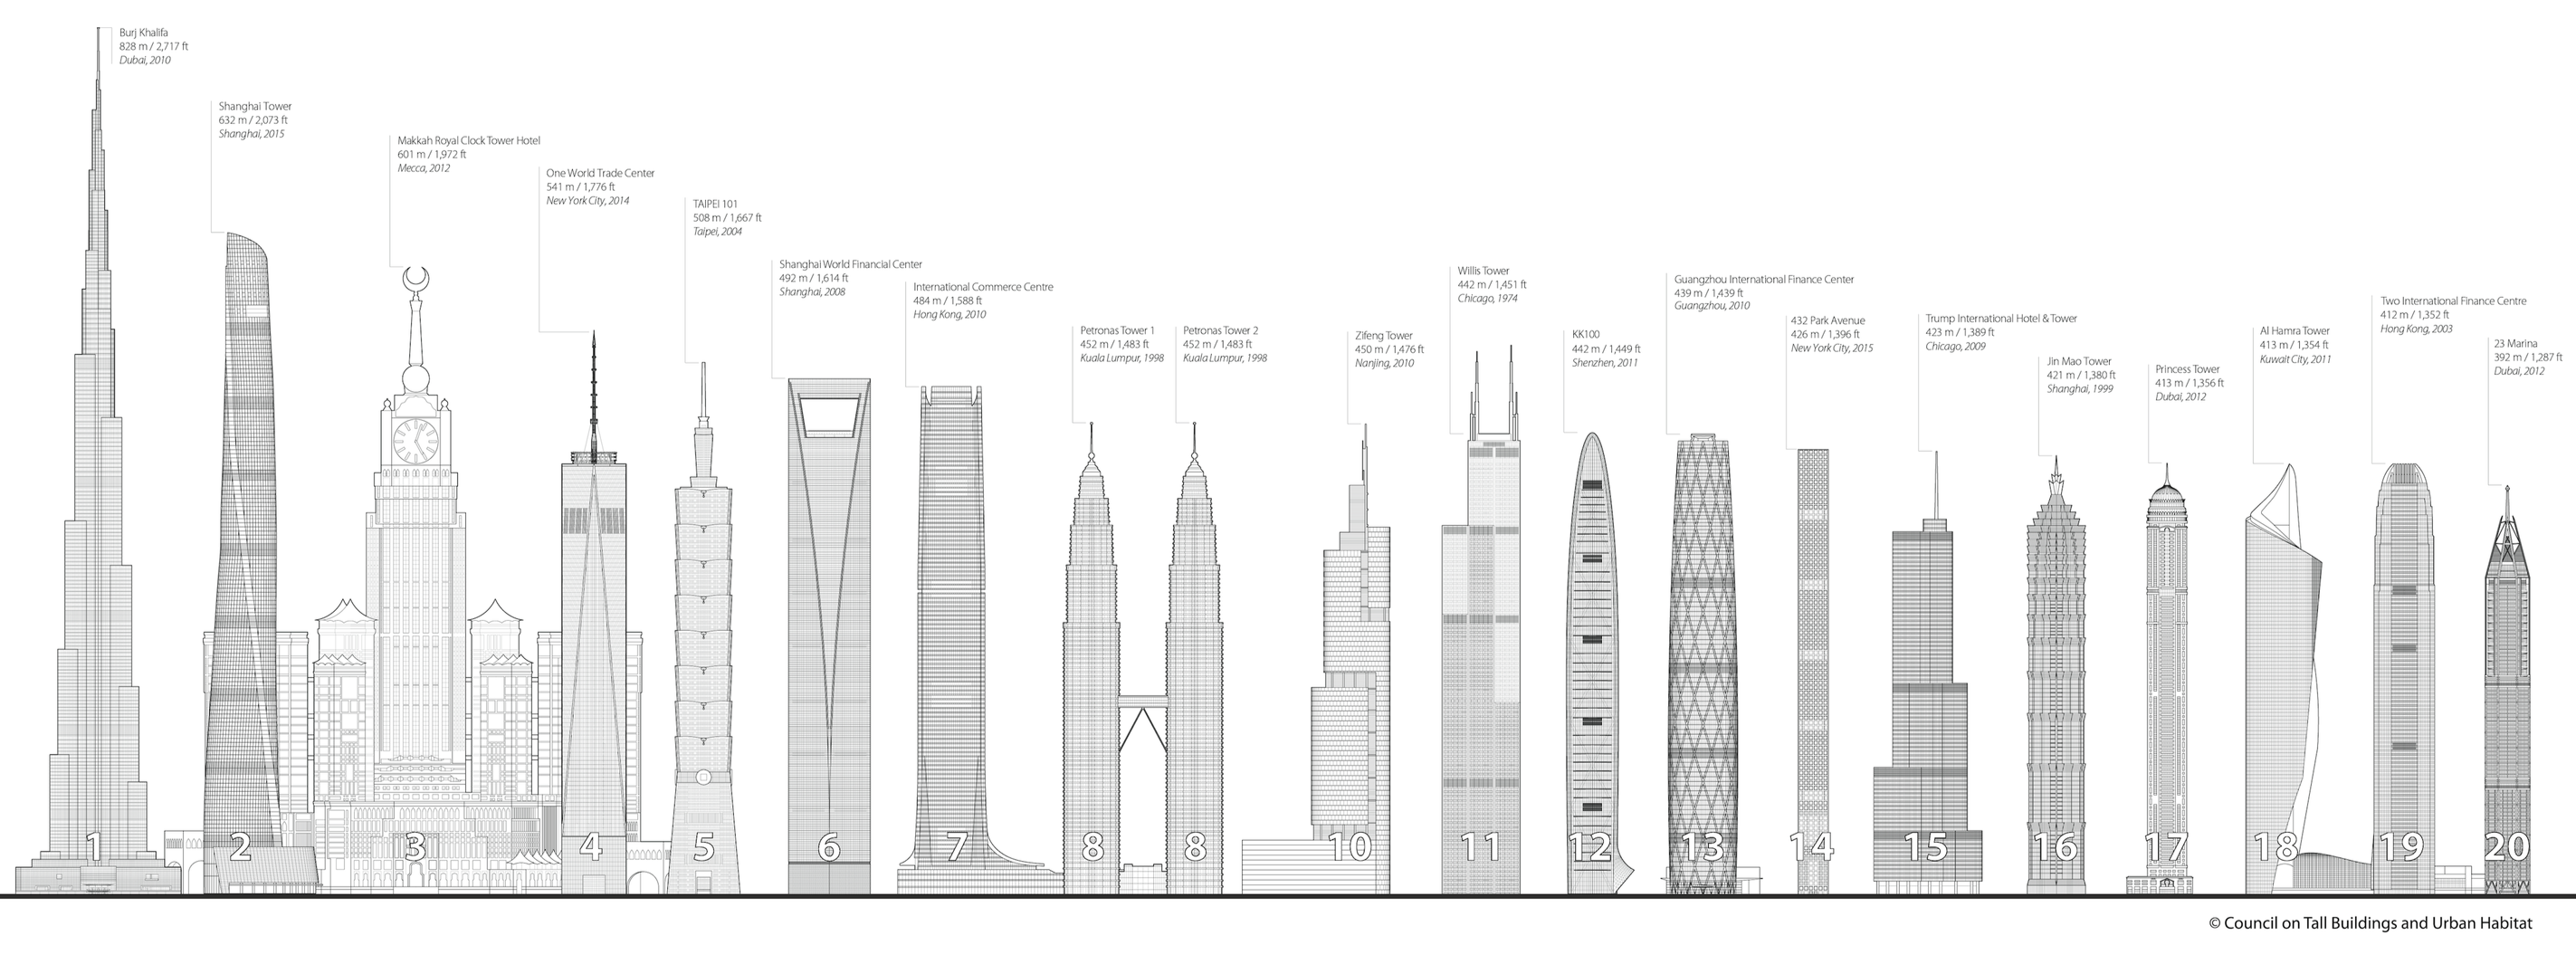 tallest building in the world essay Freedom's just another word for    the nation's second-tallest building one world trade center — the so-called freedom tower, which has been the tallest in the city since 2012 — would no longer hold that lofty designation under a developer's plan to supersize his existing design for a 57th.